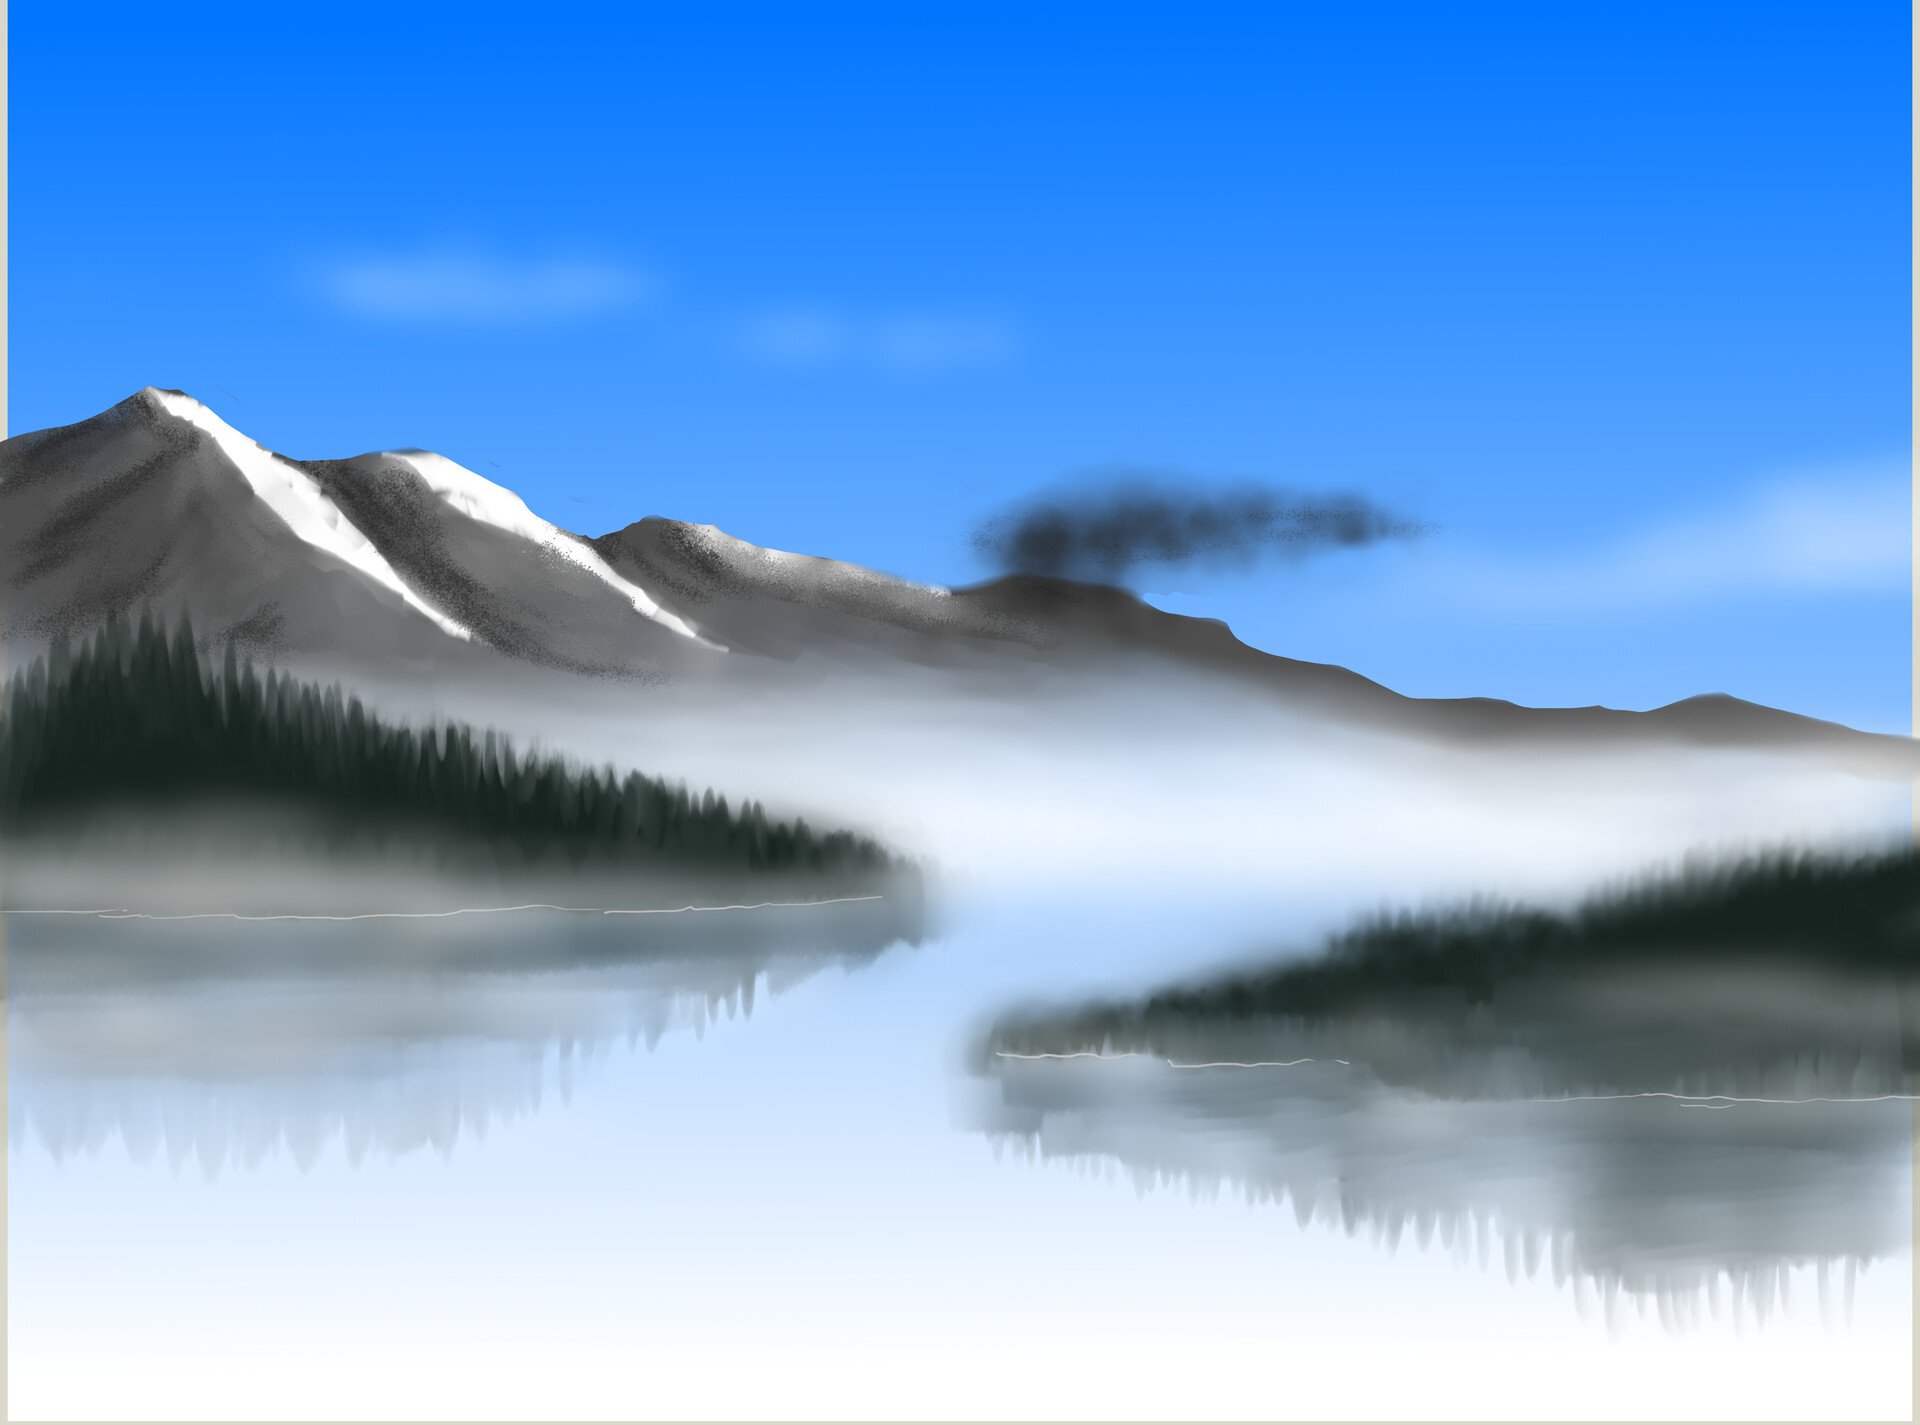 A (mostly) peaceful foggy landscape.